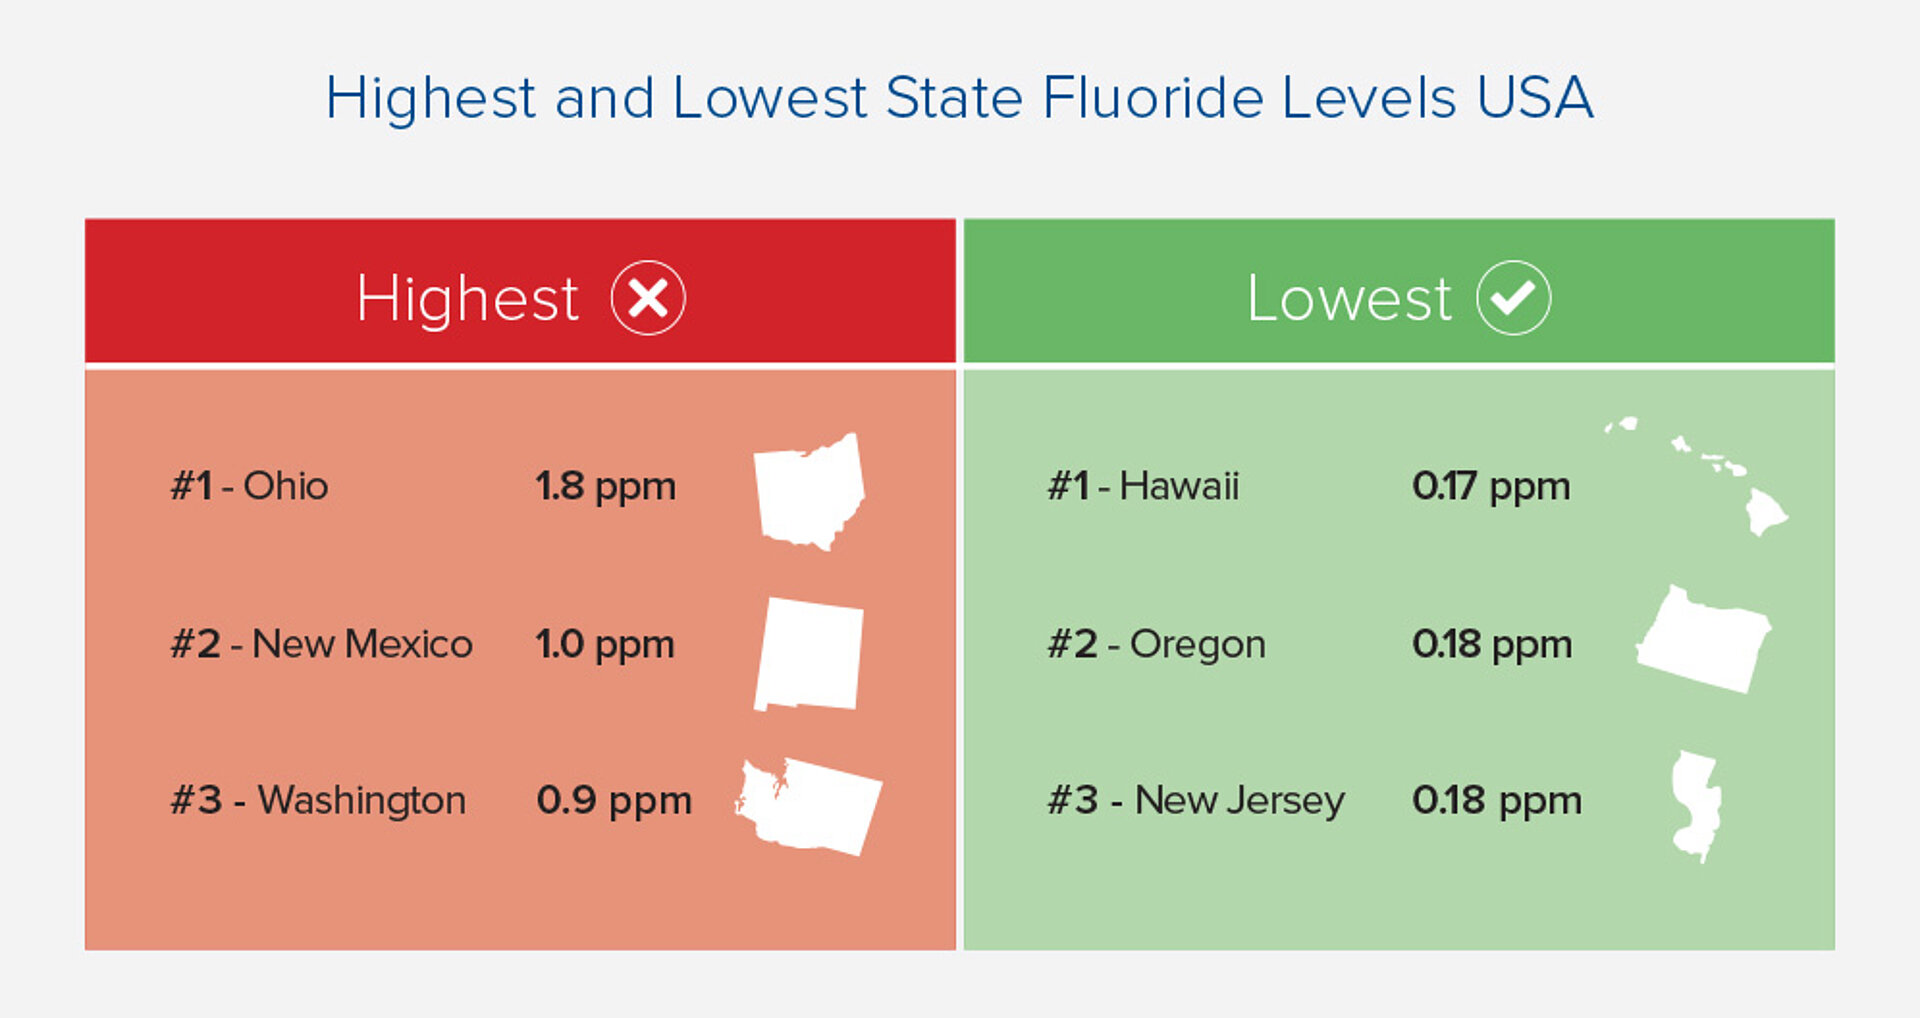 Highest and lowest state fluoride levels in the US